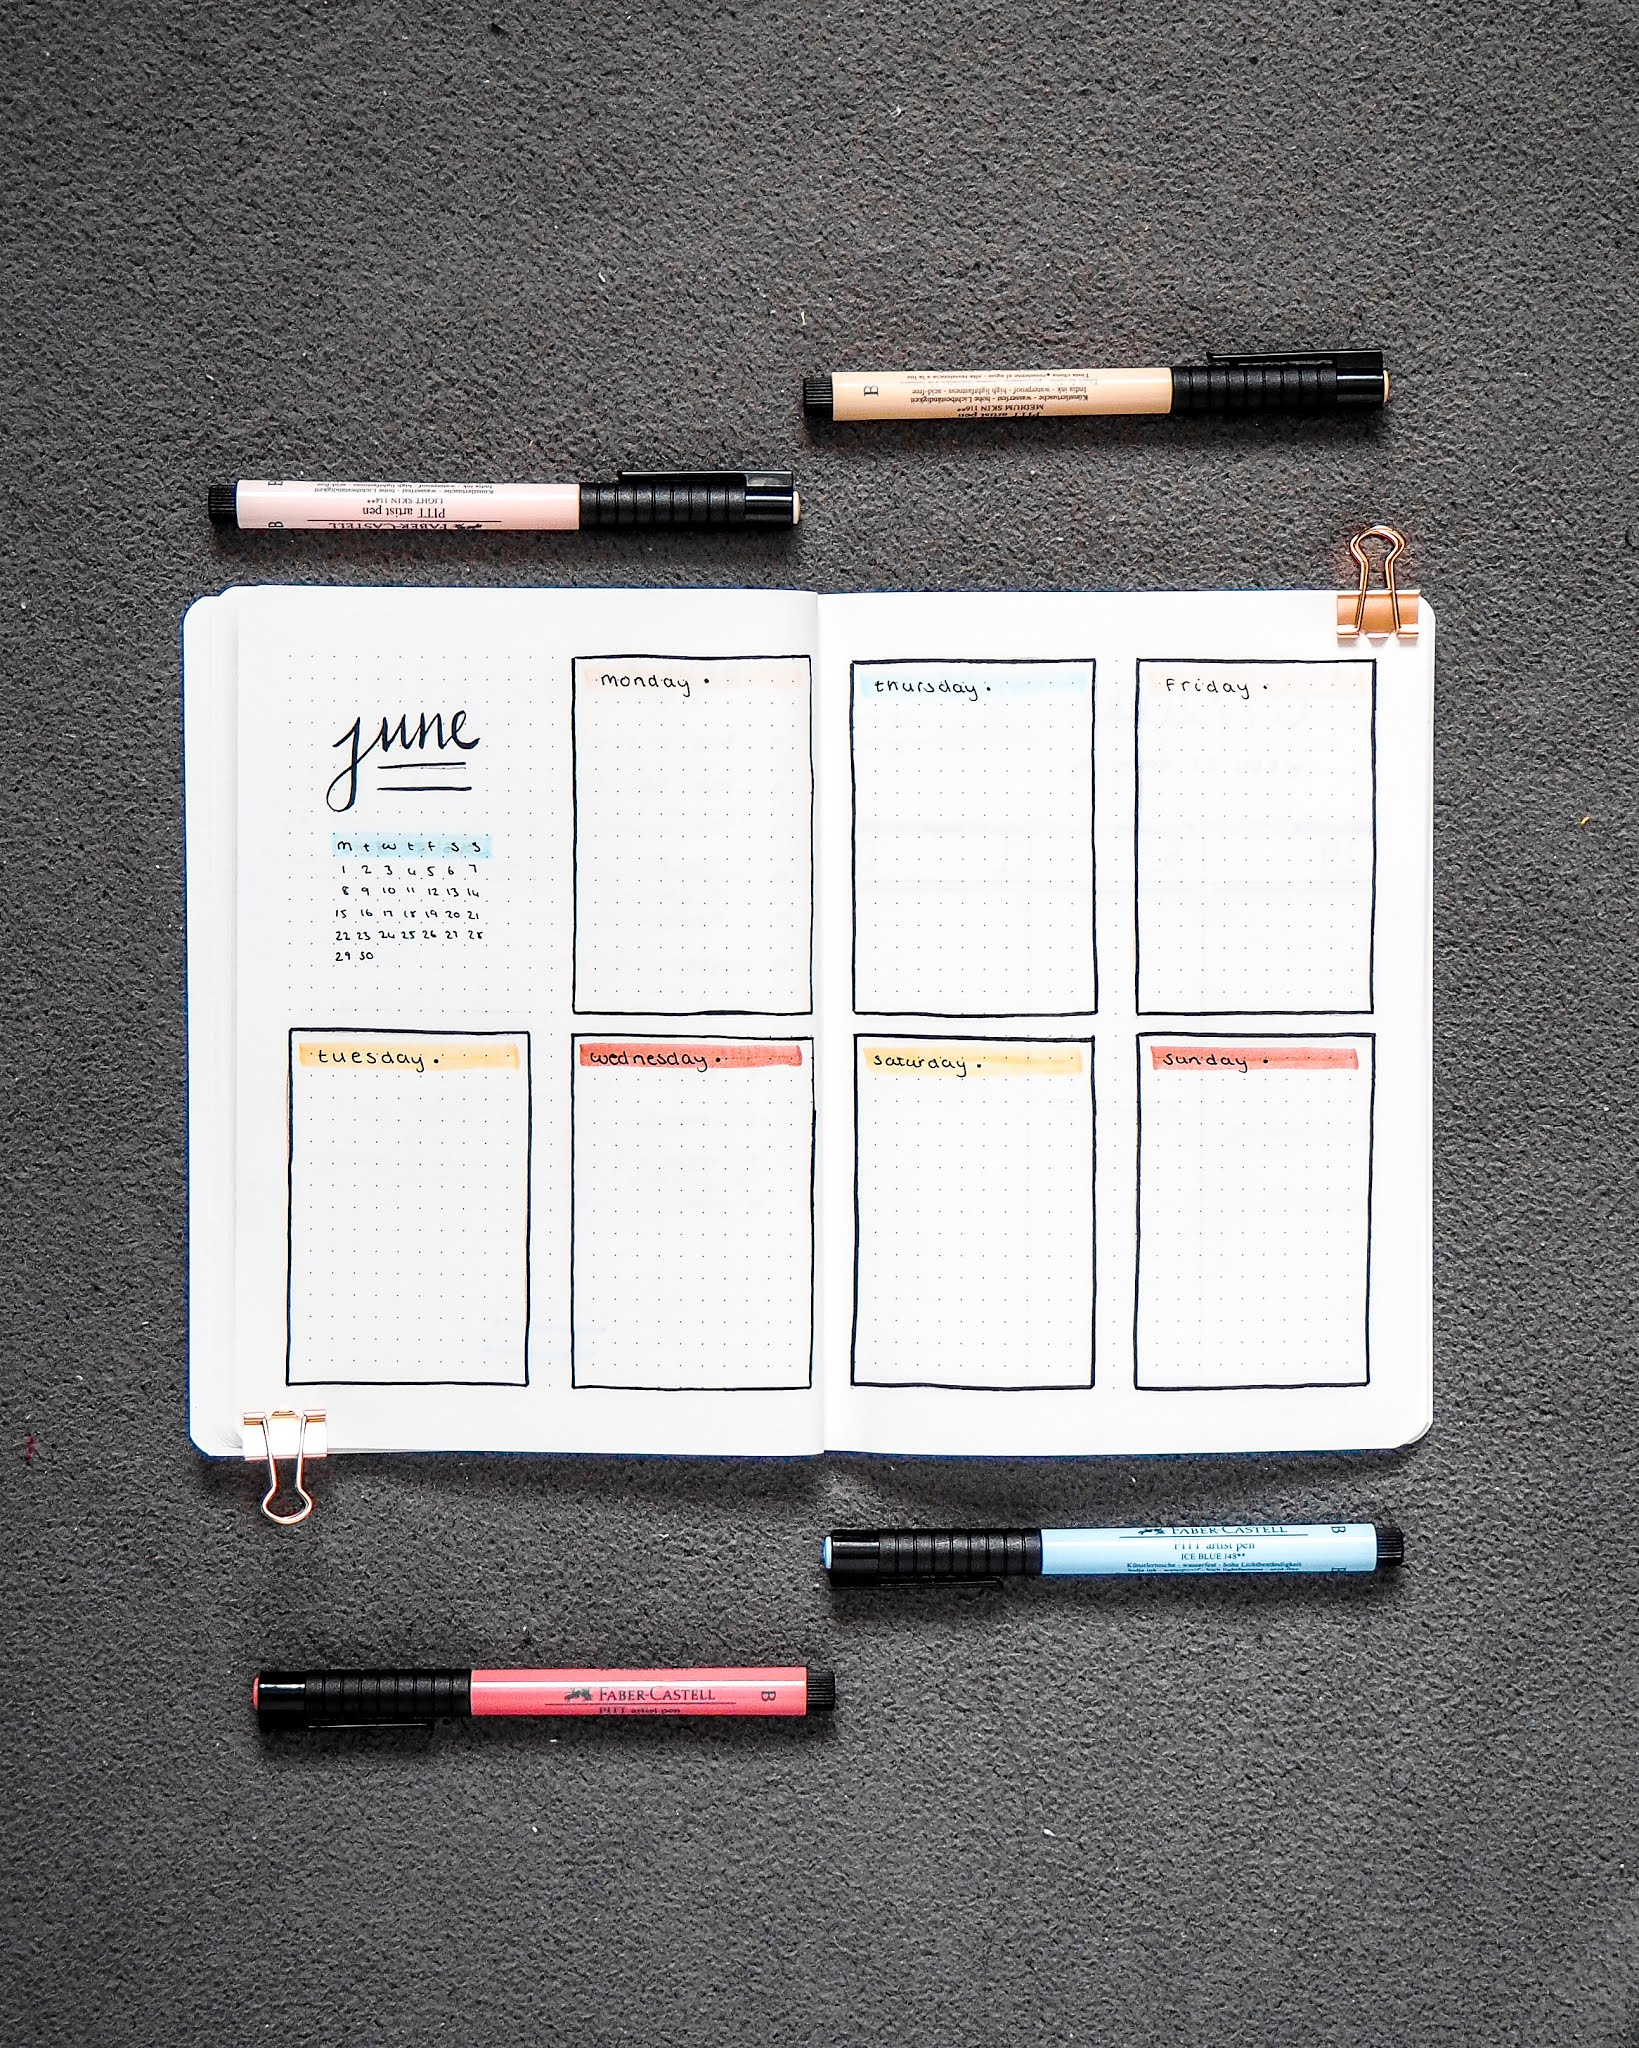 a double spread of a weekly spread out. each page spilt into four, with the top left showing a mini month calendar, and then the rest of the quadrants for each day of the week